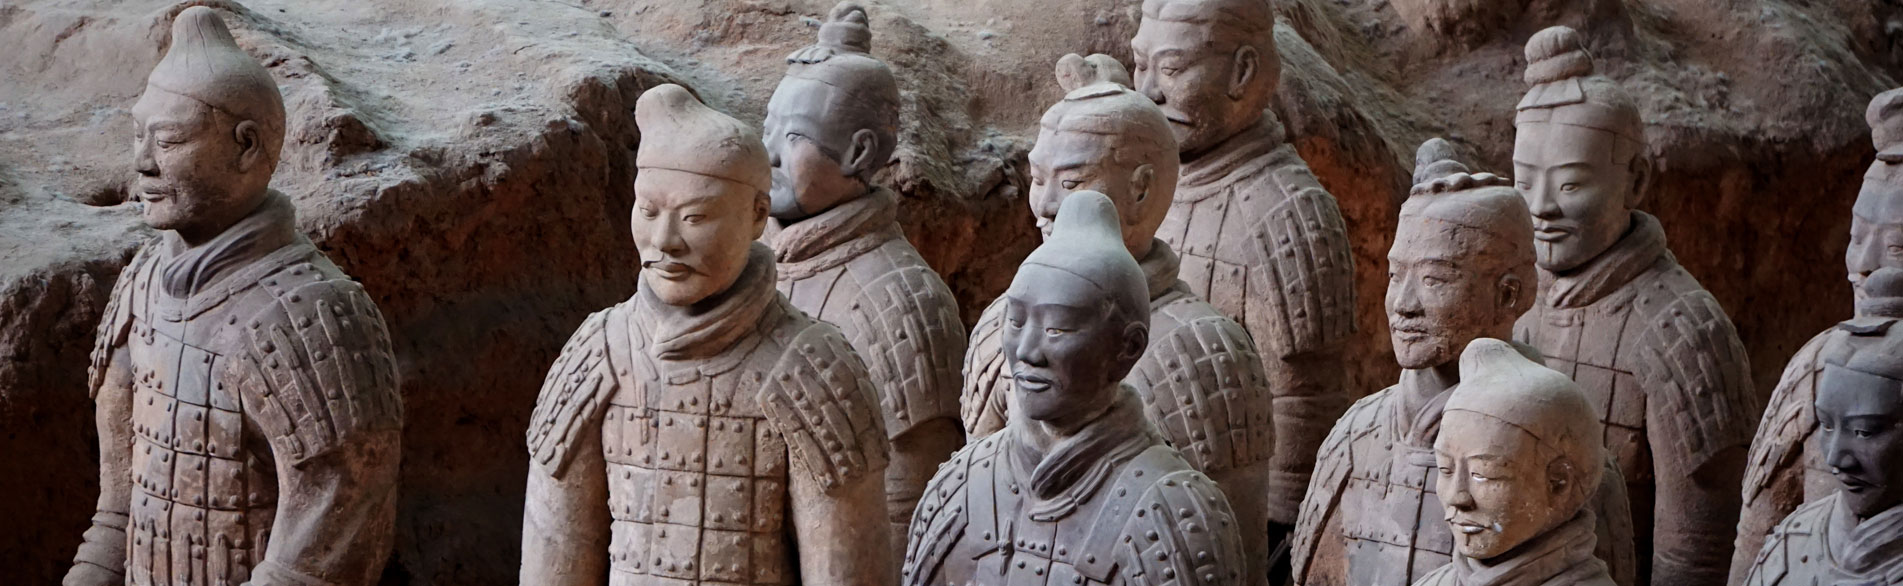 Half-Day Xi'an Terracotta Warriors Discovery Tour